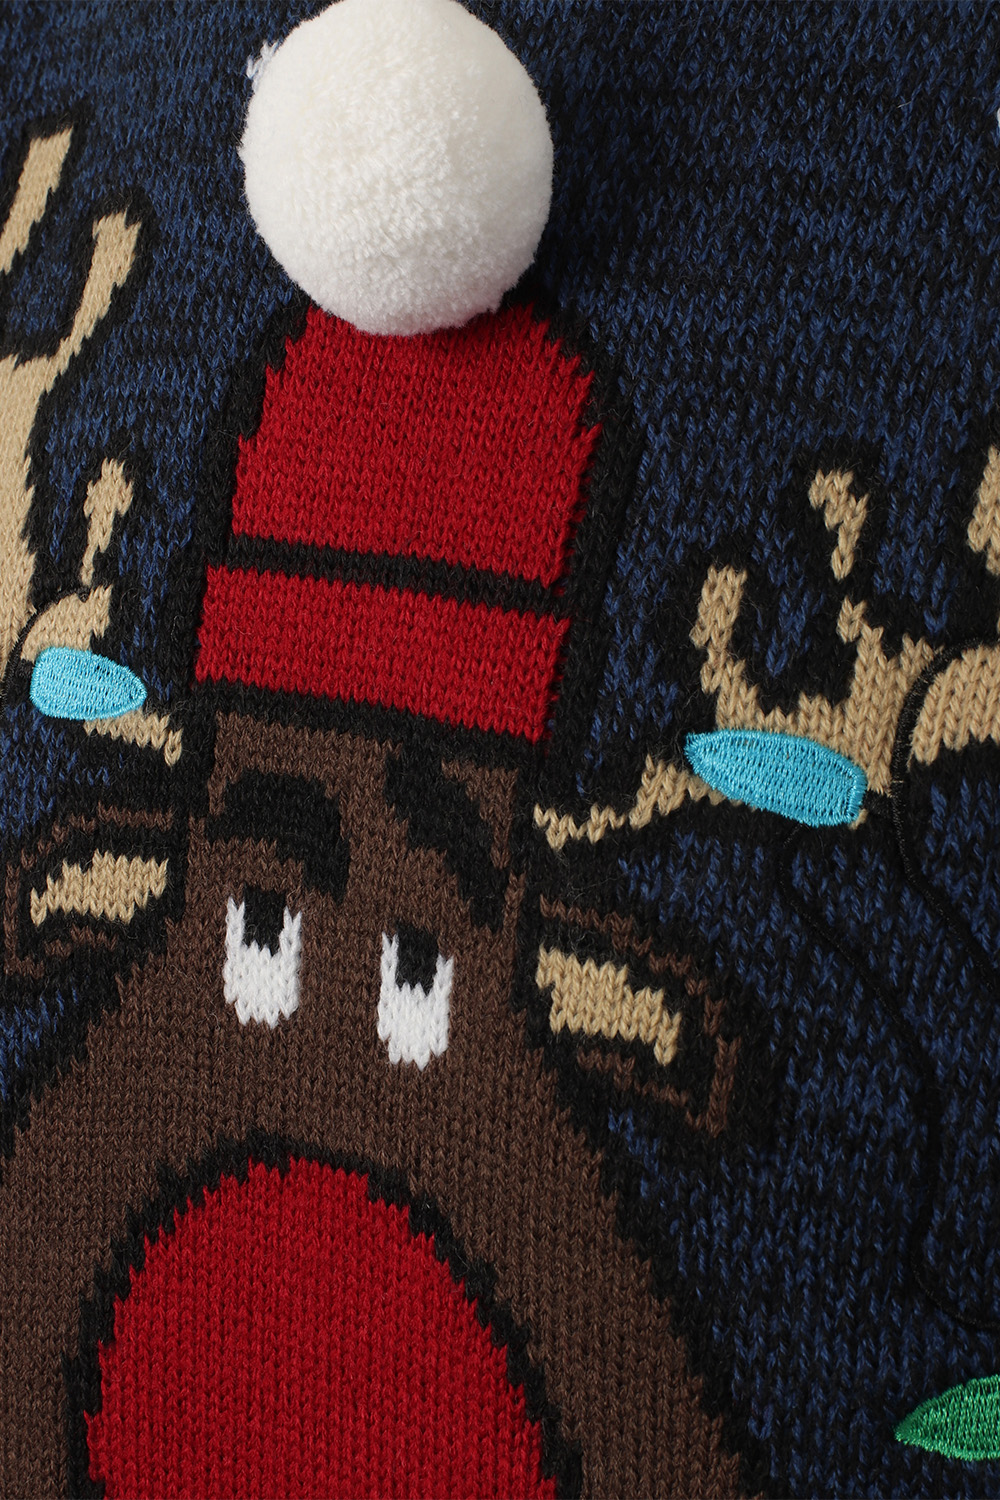 Seasons-Greetings-Childrens-Novelty-Christmas-Jumpers-Festive-Winter-Sweaters thumbnail 7